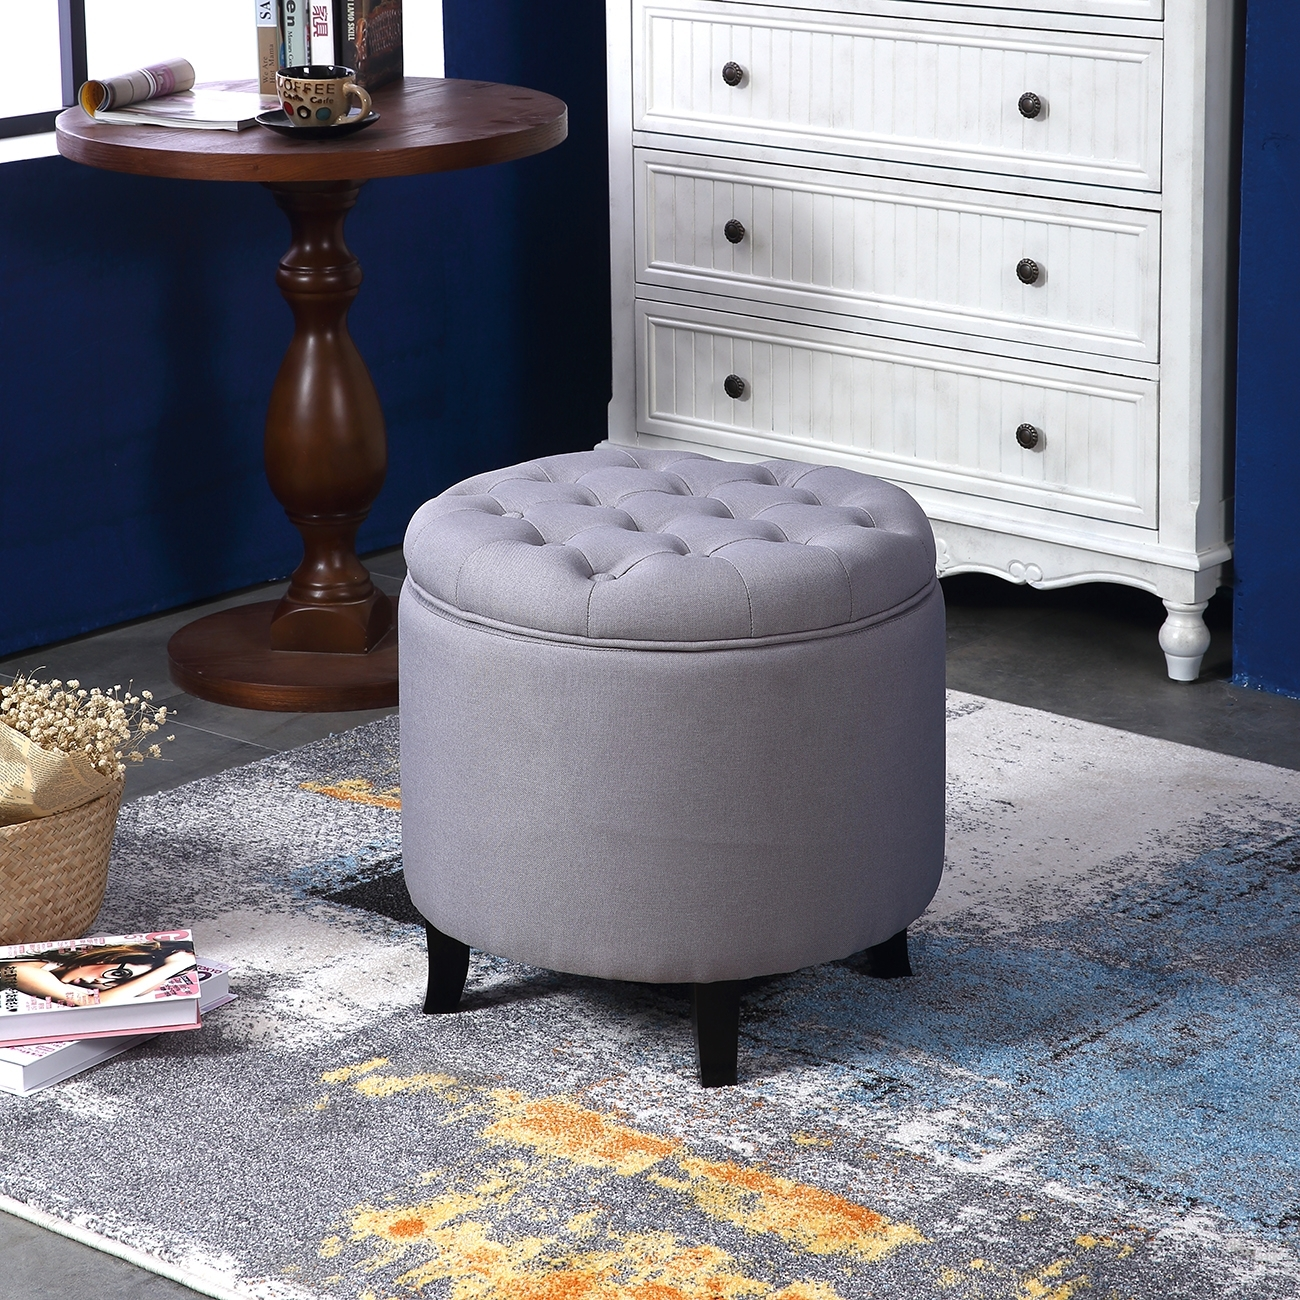 Elegant Fabric Tufted Button Ottoman Round Footstool Coffee Table with regard to Button Tufted Coffee Tables (Image 11 of 30)